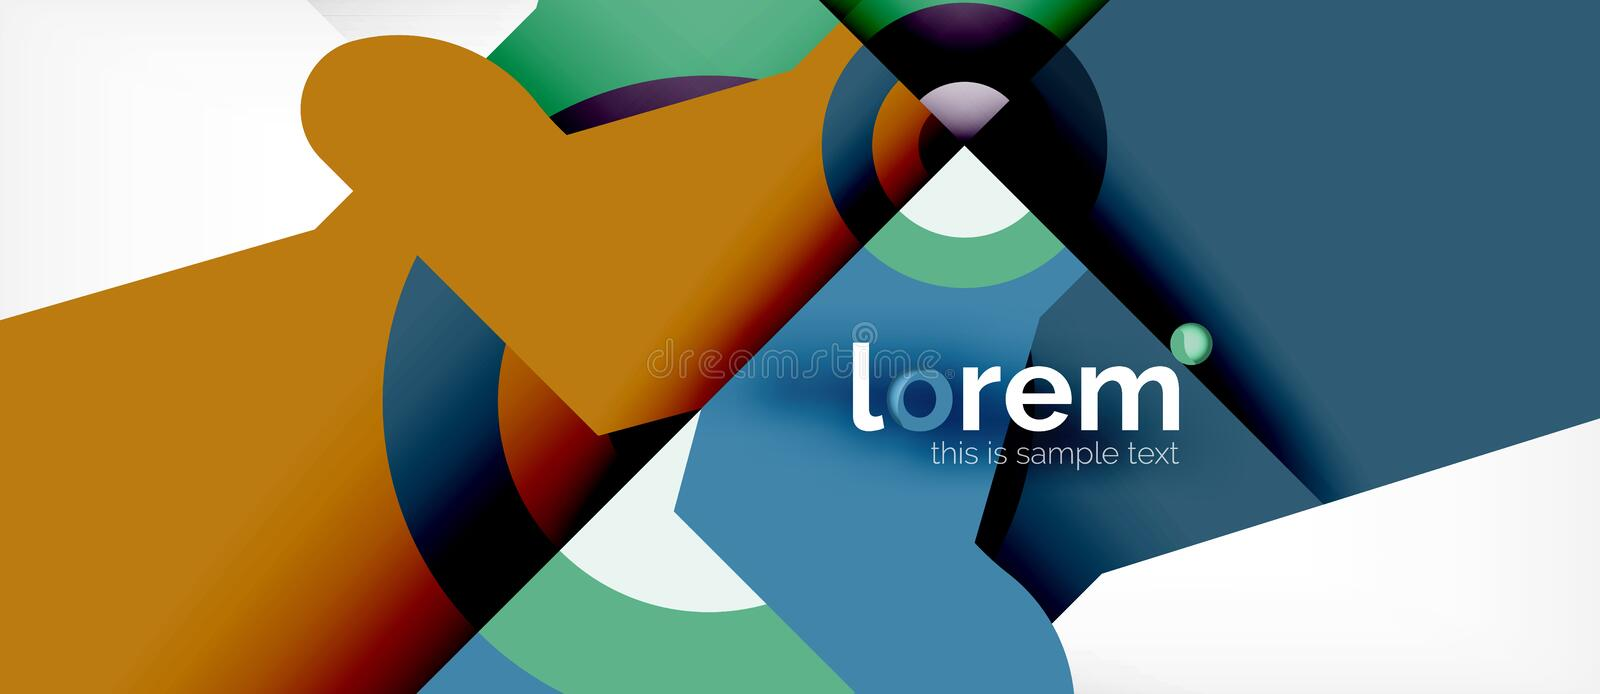 Geometric colorful shapes composition abstract background. Minimal dynamic design royalty free illustration